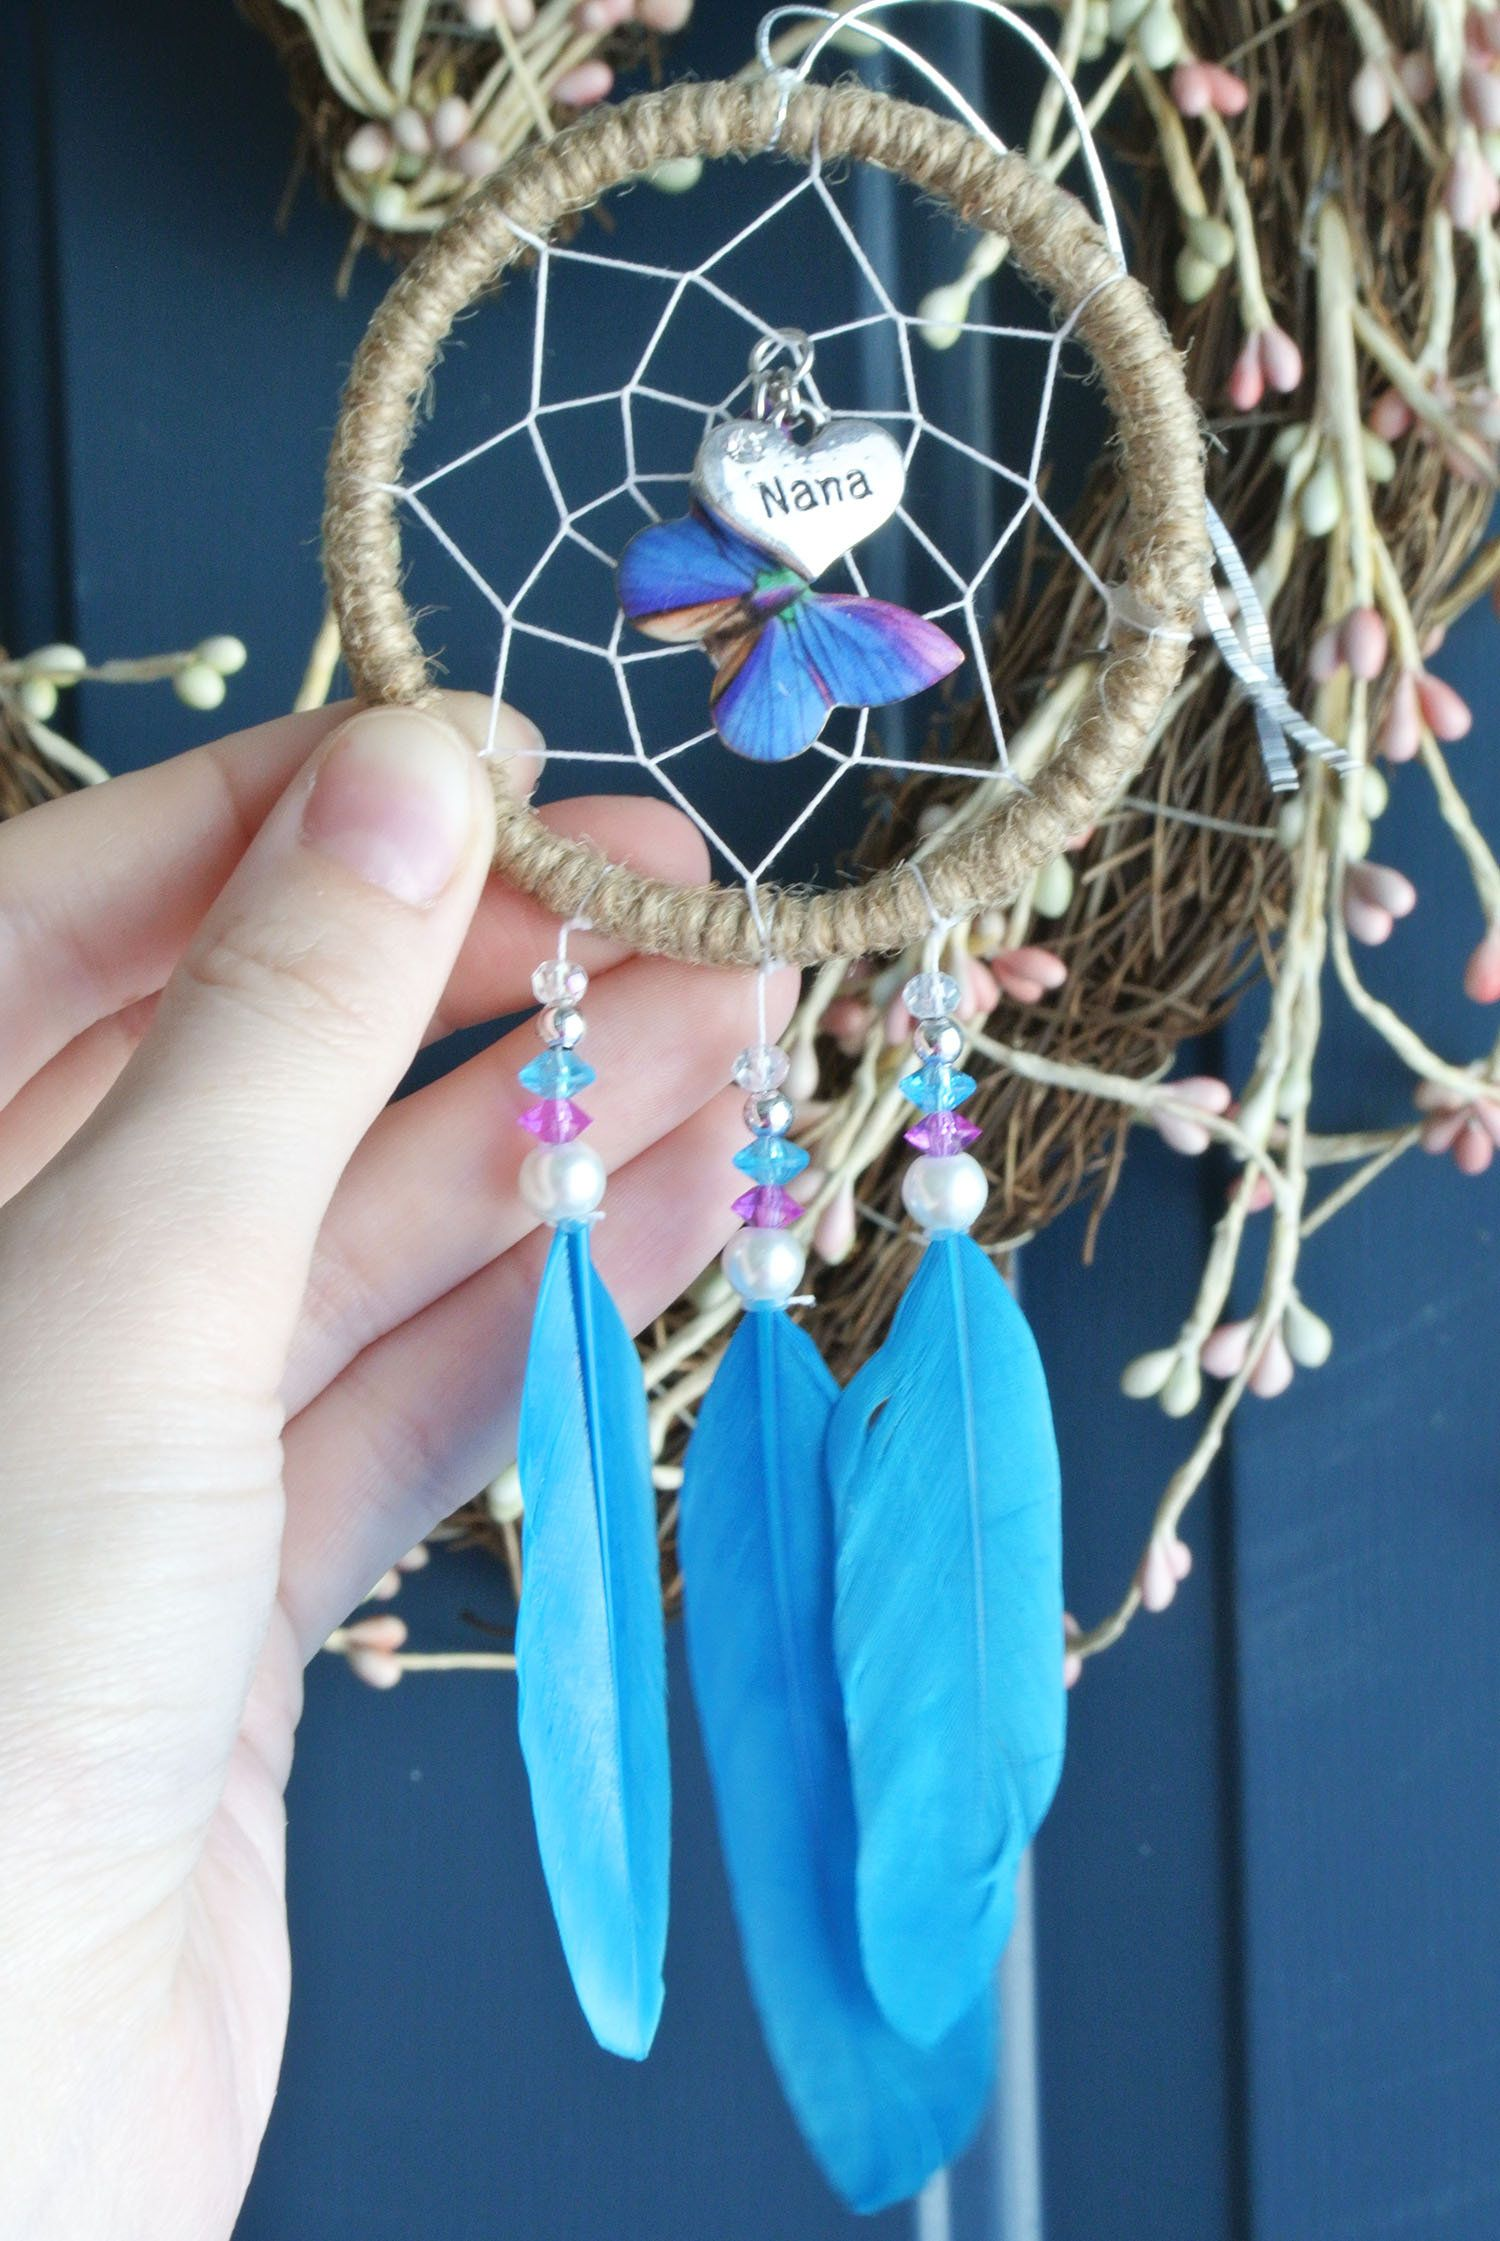 Mothers day gift for nana butterfly car dream catcher